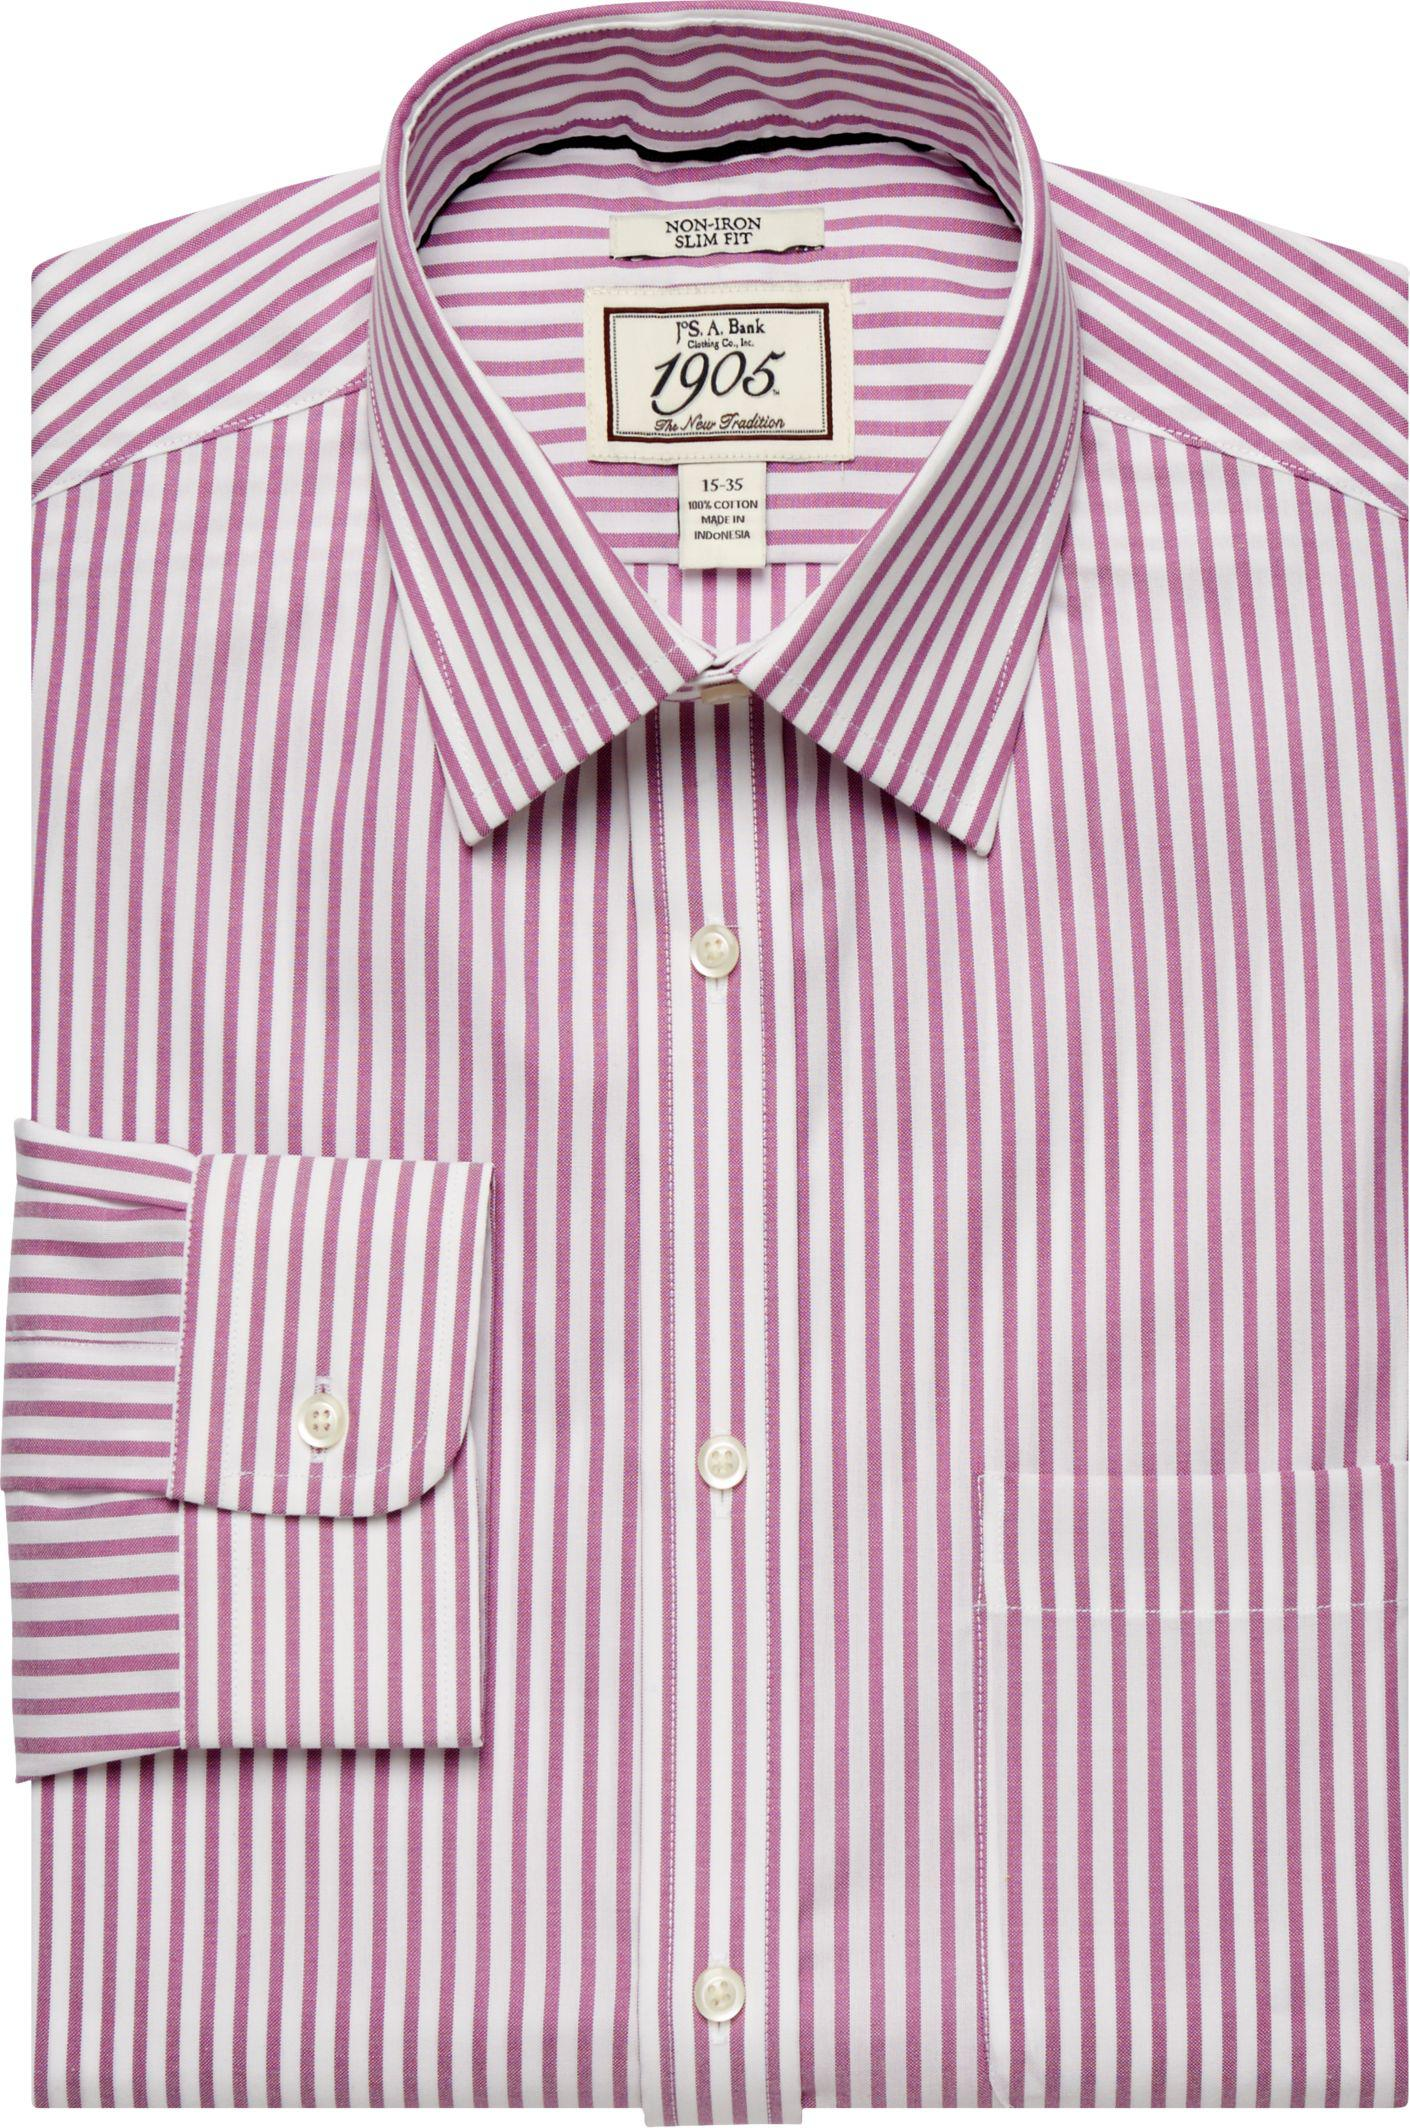 Jos a bank 1905 collection slim fit spread collar stripe for Jos a bank slim fit vs tailored fit shirts